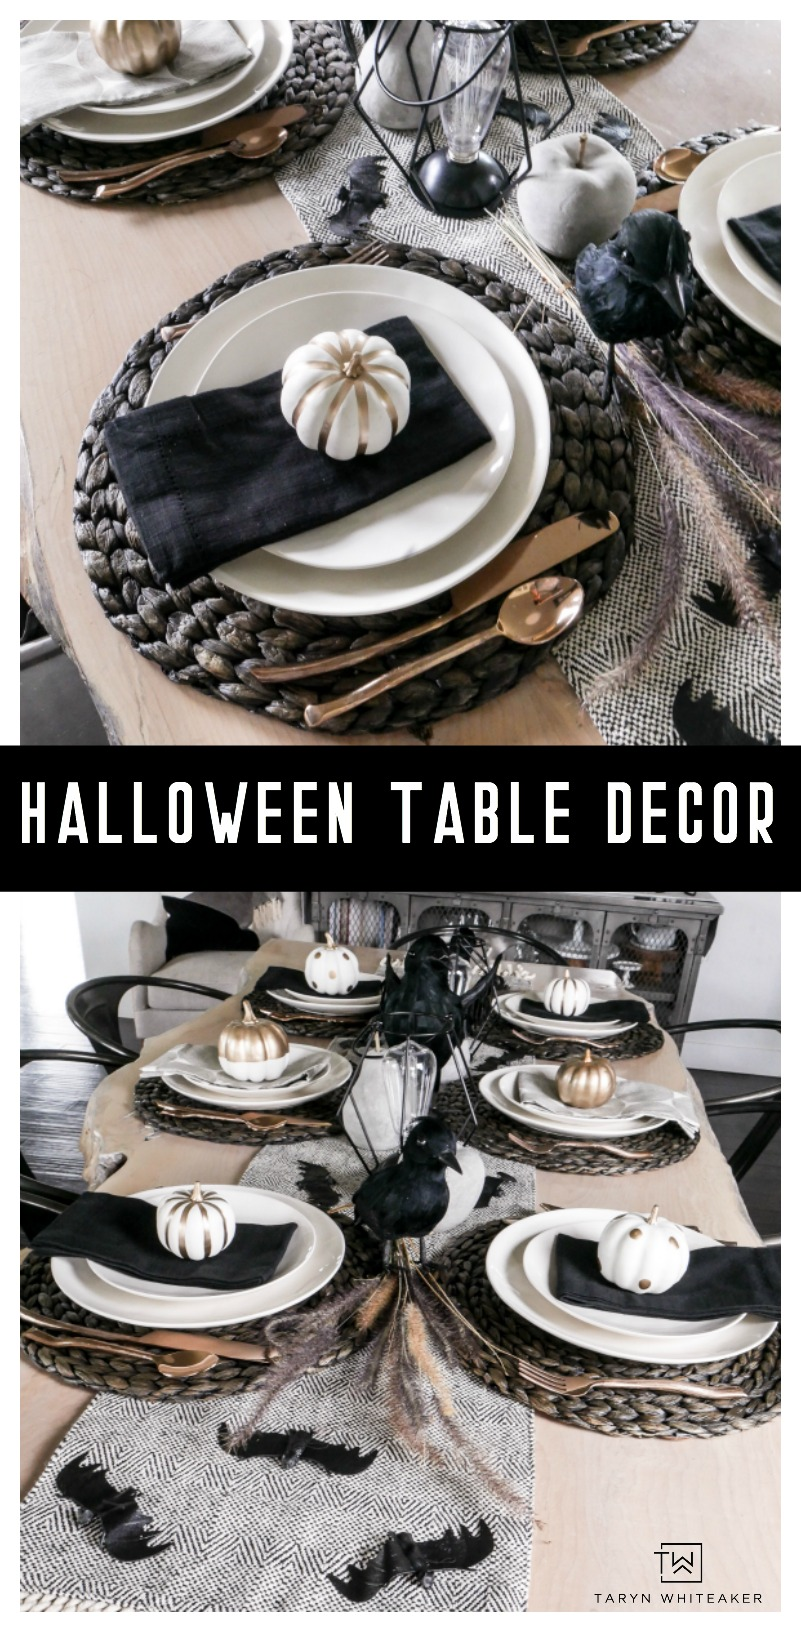 Black and White Halloween Table Decorations with gold accents! Love this classy Halloween table!